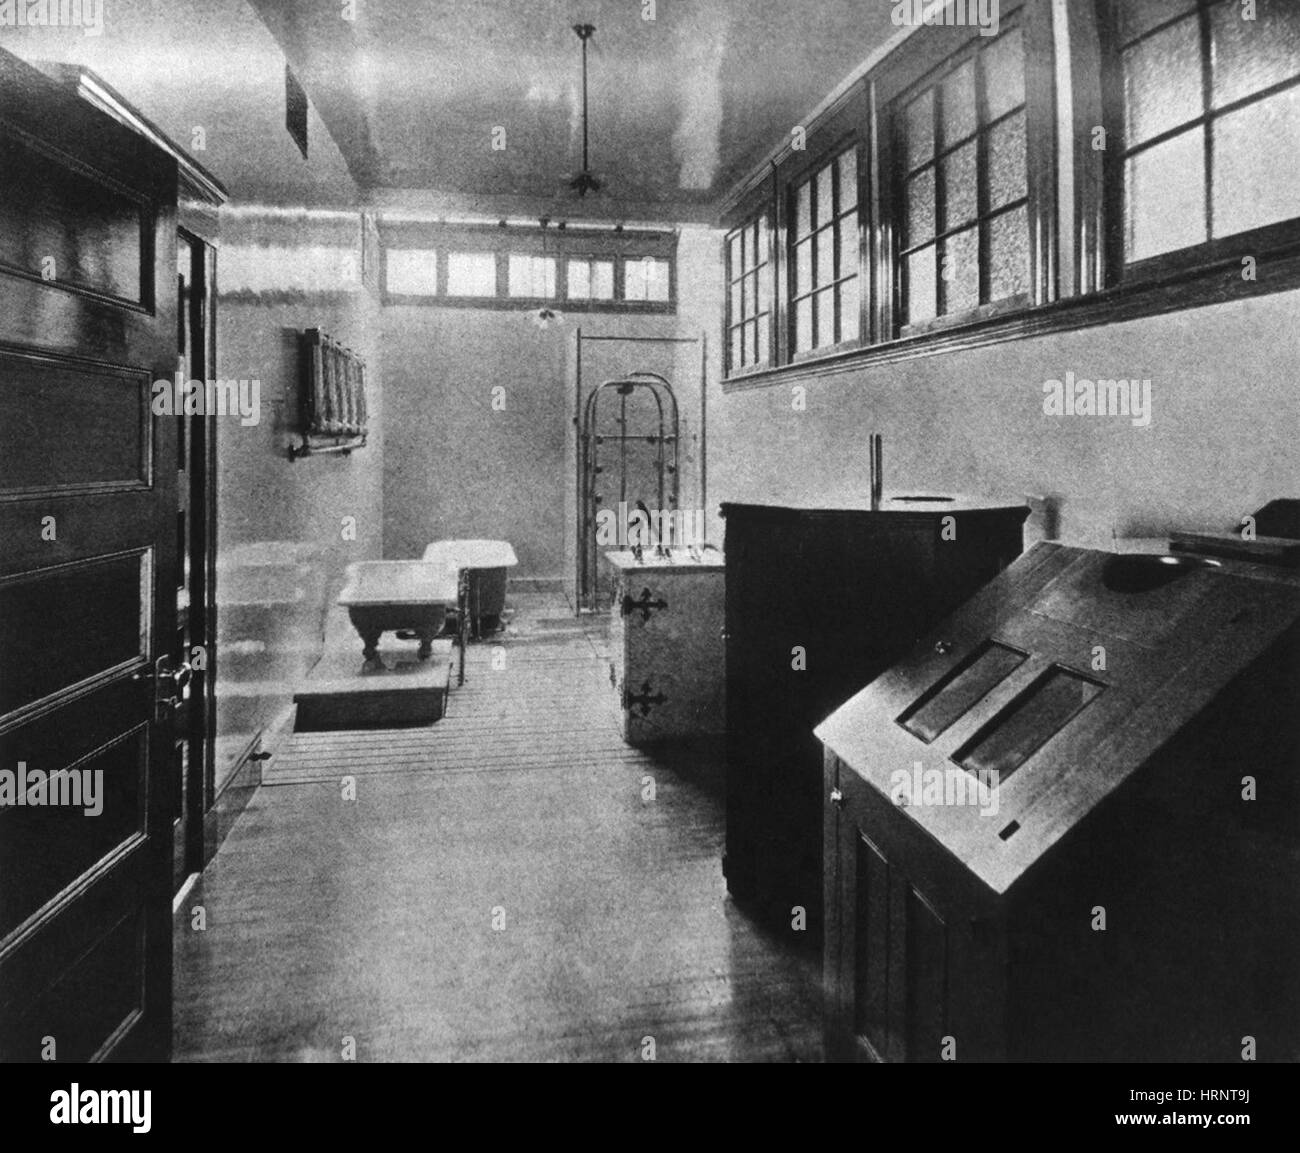 Hydropathic Room, 1904 - Stock Image